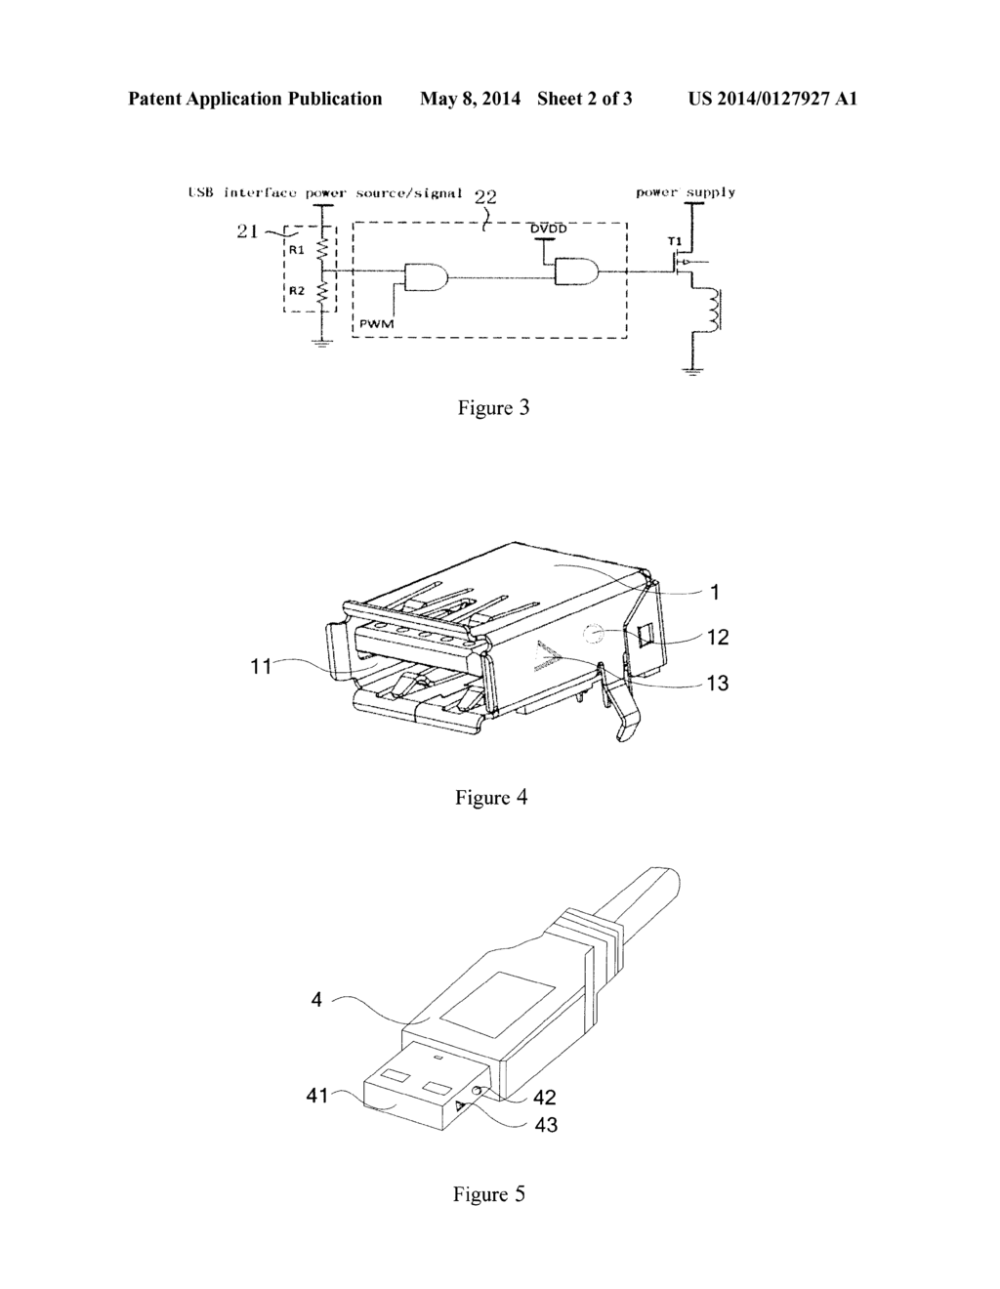 medium resolution of usb male end usb female end and usb port connection device diagram schematic and image 03